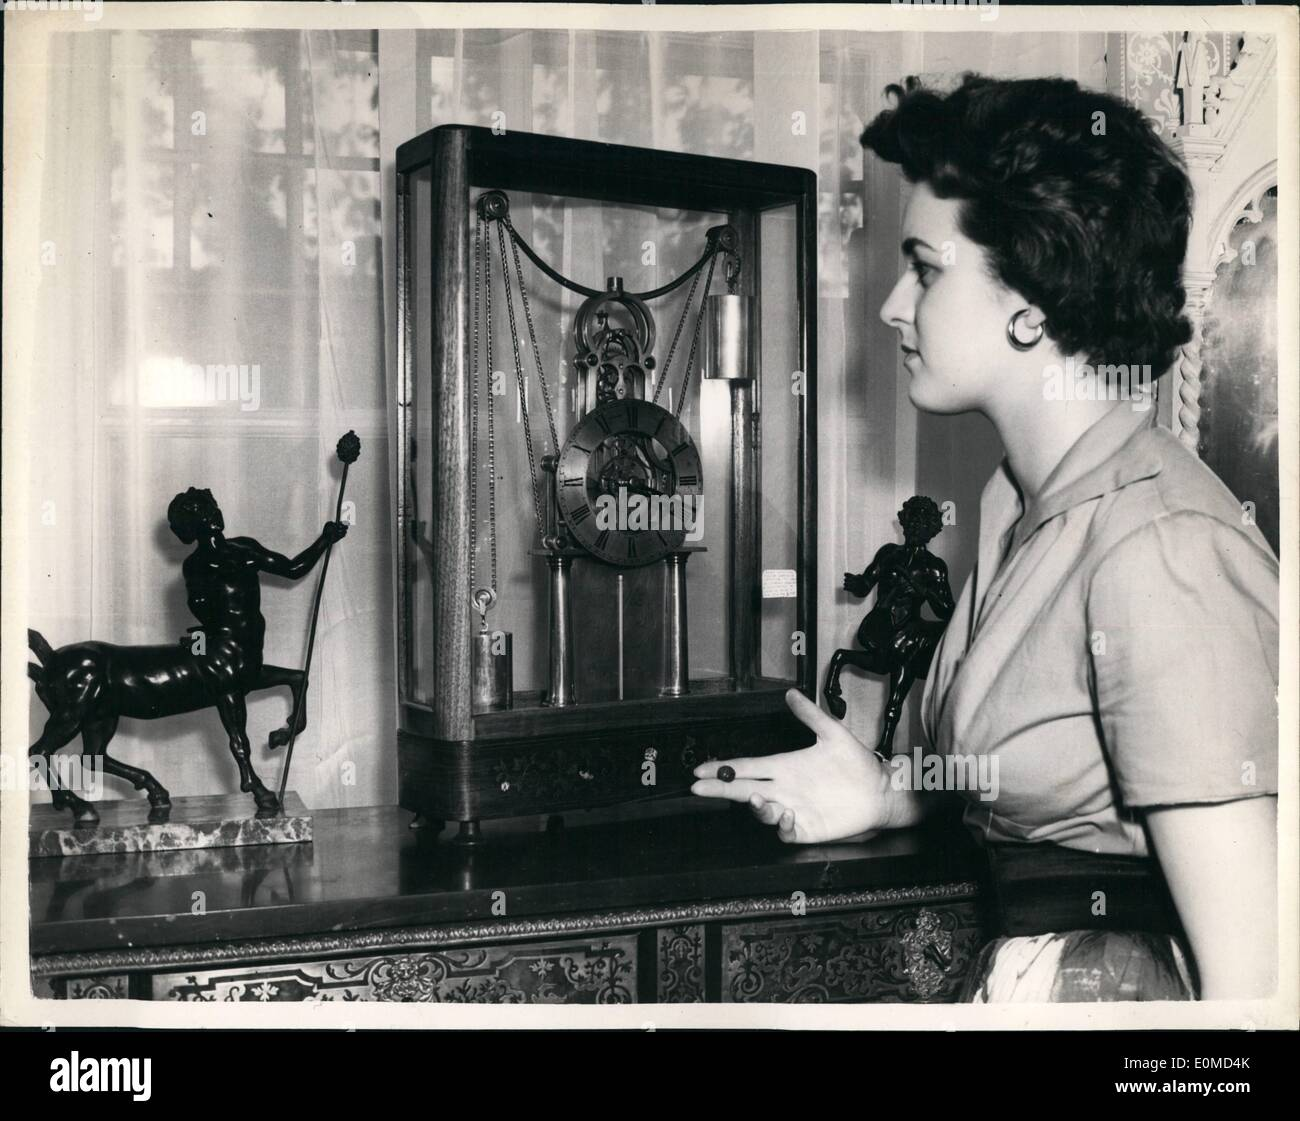 Sep. 09, 1954 - Autumn antique Dealer's Fair at Chelsea Town Hall. Needlework Chess Set. Press preview was held this afternoon at Chelsea Town Hall of the Autumn Antique Dealer's Fair. Keystone Photo Shows: Jacqueline Bromley admires a early American 19th century - 8 day skeleton mantel clock with thermometer below the dial. The clock is wound by cord underneath base. - Stock Image